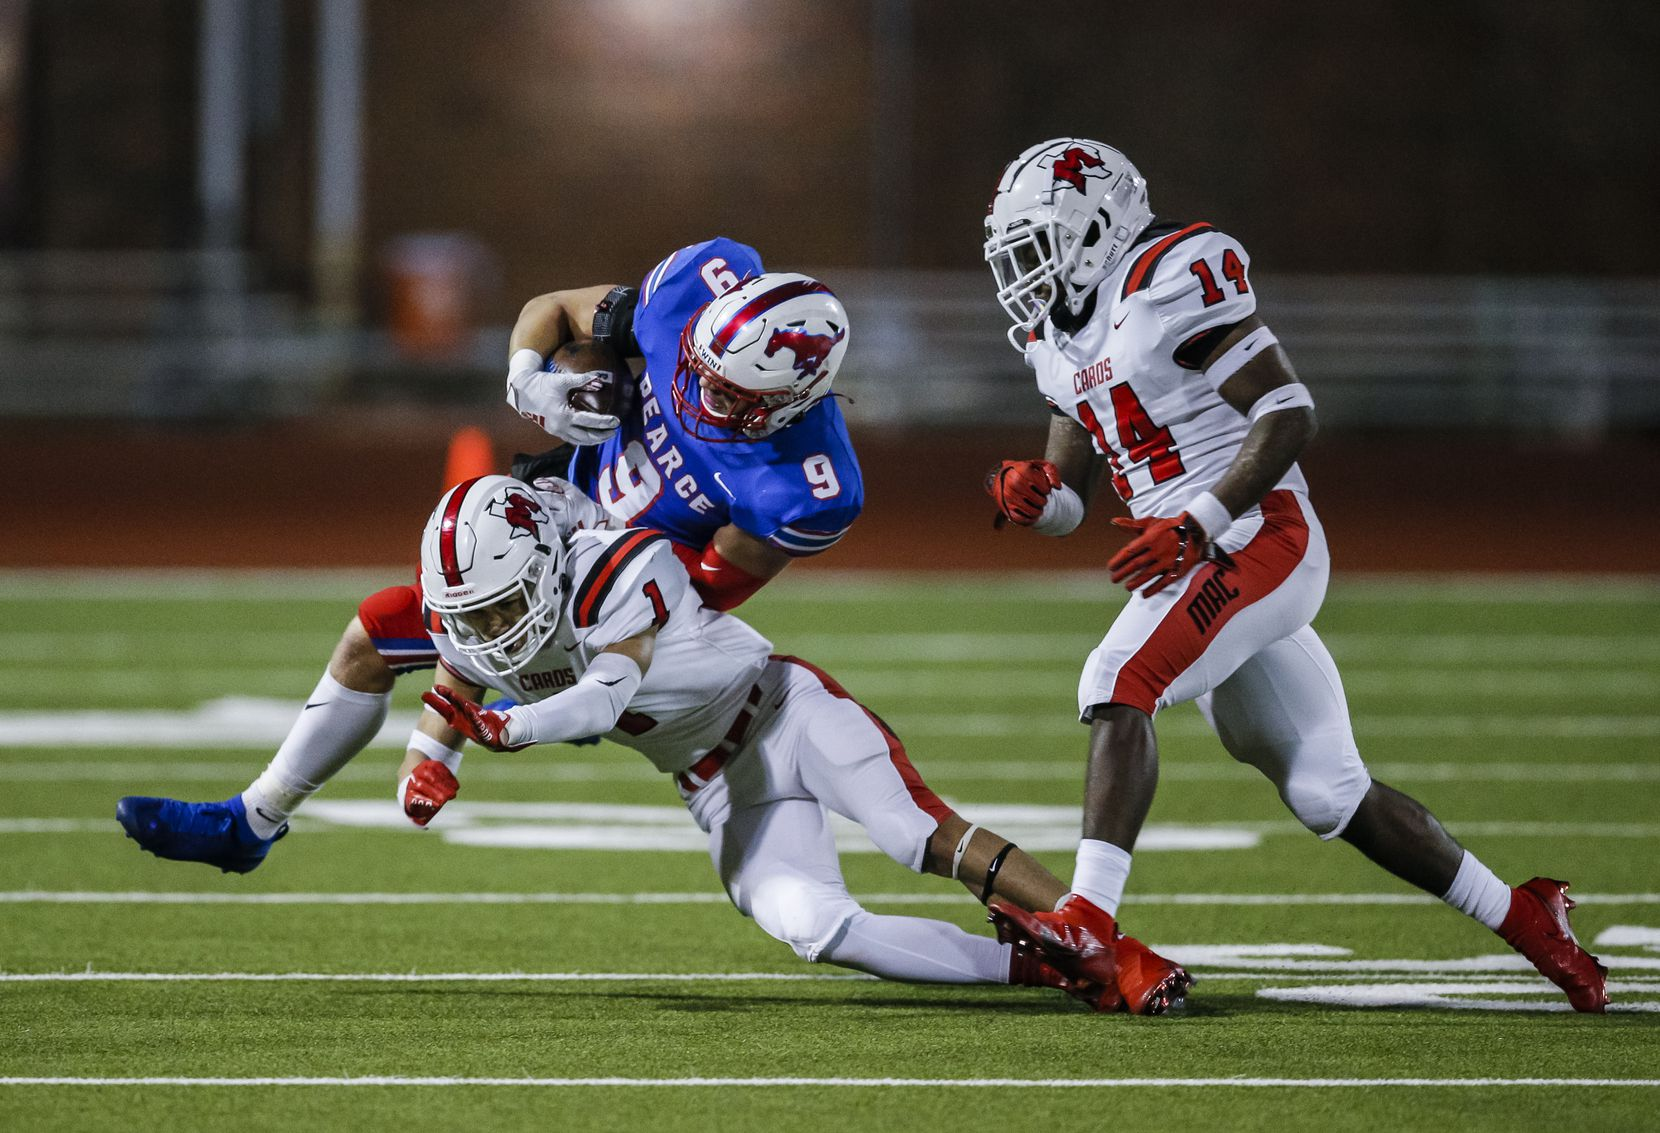 Irving MacArthur seniors Roland Jackson (1) and Chandler Neal (14) tackle JJ Pearce senior halfback Dylan Adams (9) during the first half of a high school playoff football game at Eagle-Mustang Stadium in Richardson, Thursday, December 3, 2020. (Brandon Wade/Special Contributor)